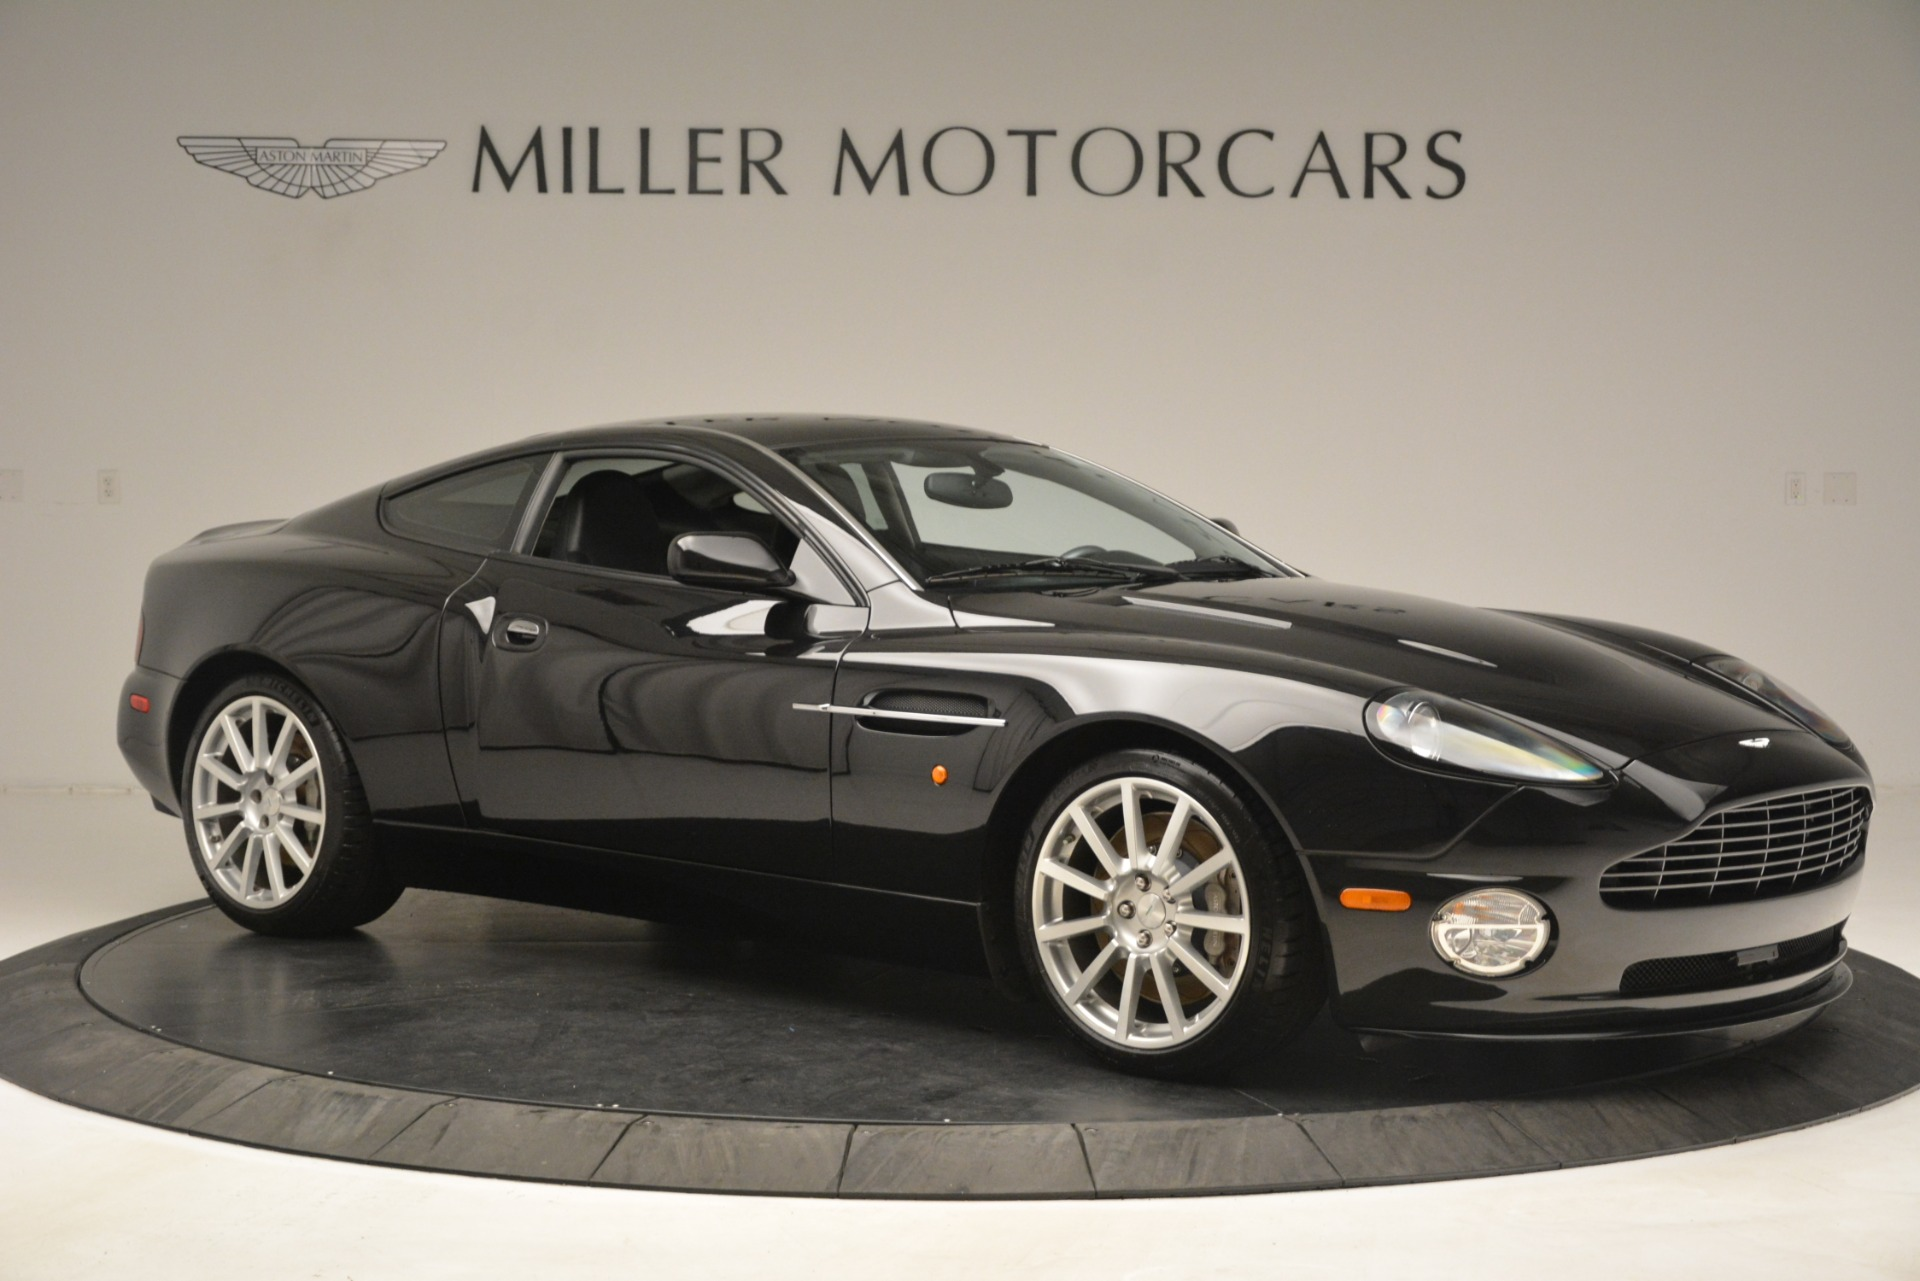 Used 2005 Aston Martin V12 Vanquish S For Sale In Westport, CT 3218_p10